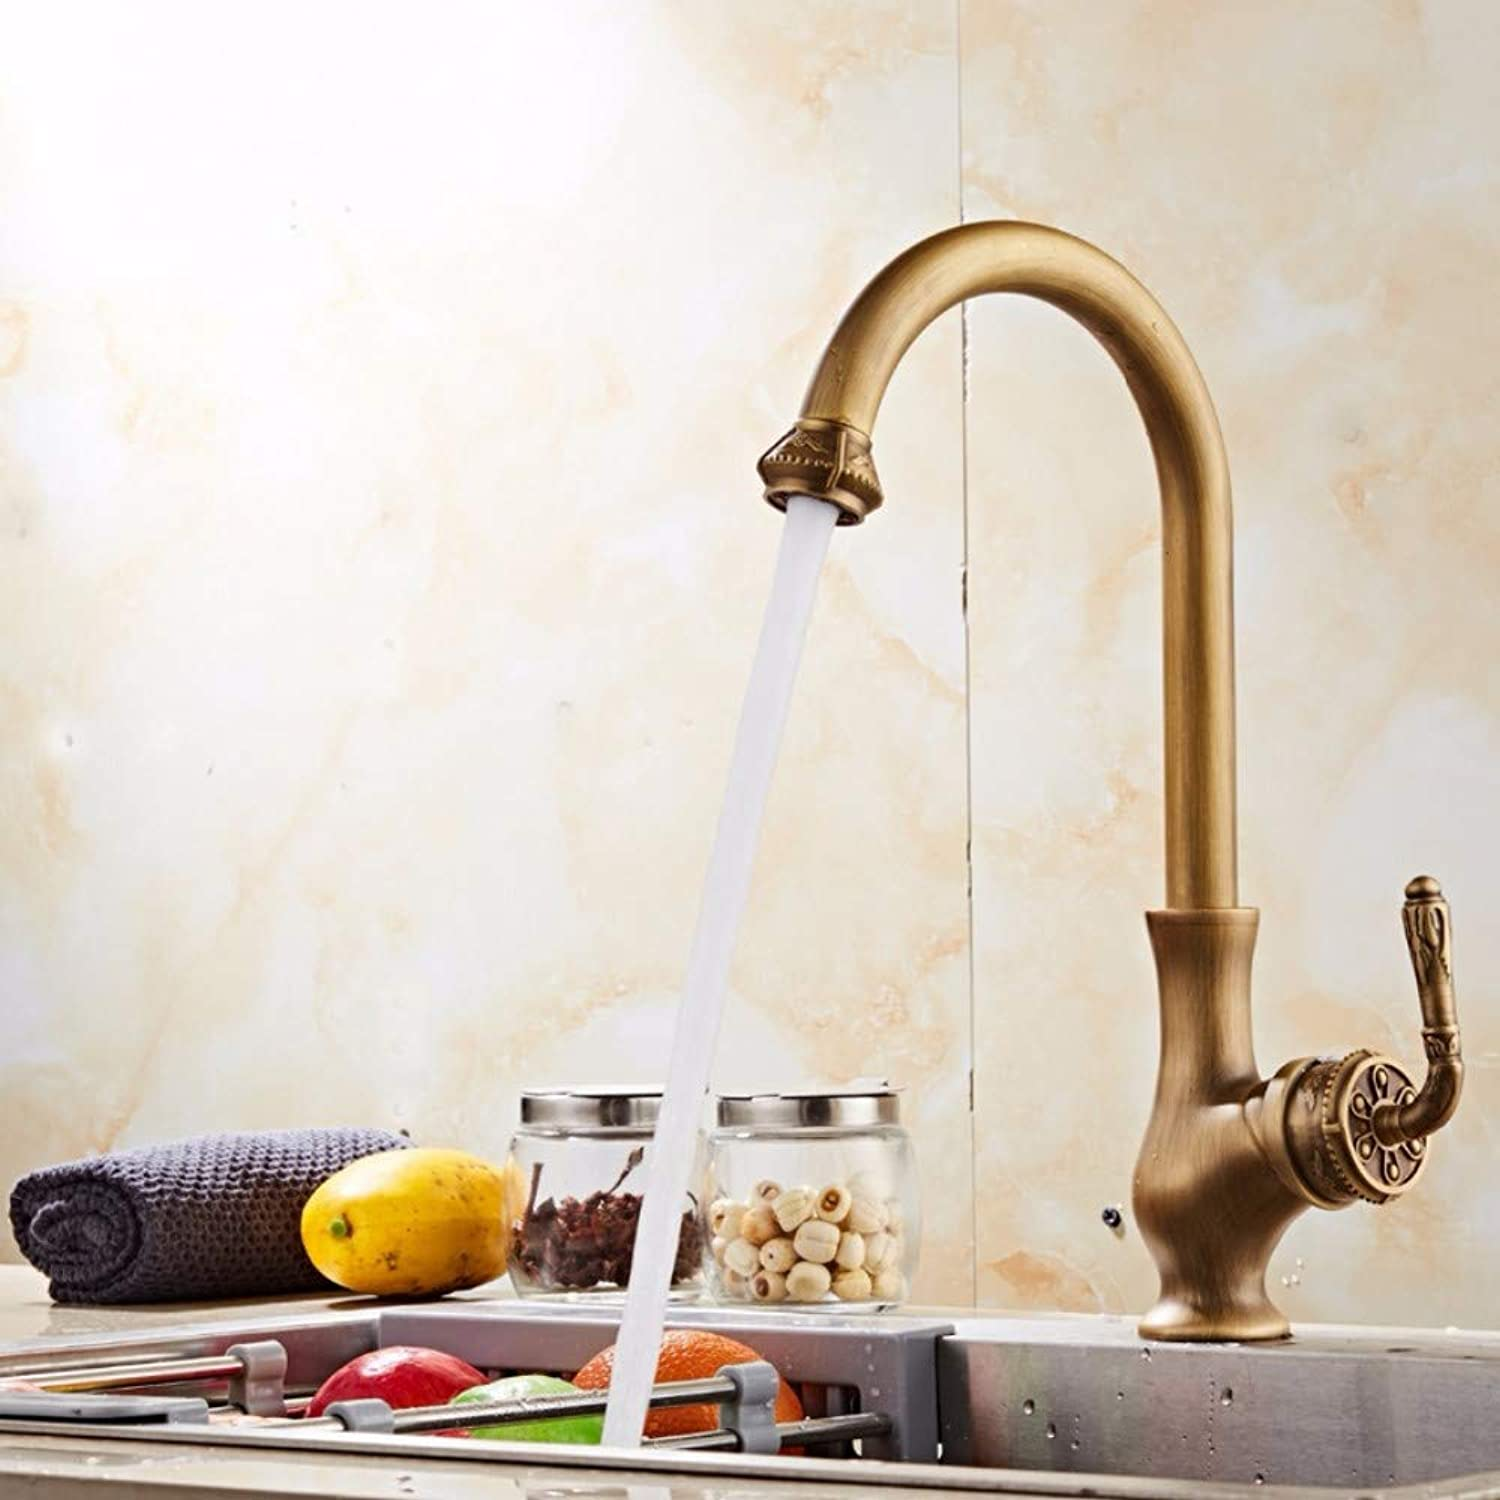 Lddpl Antique Bronze Finish Kitchen Faucets Kitchen Tap Basin Faucets Single Hand Hot and Cold Wash Basin Tap 24